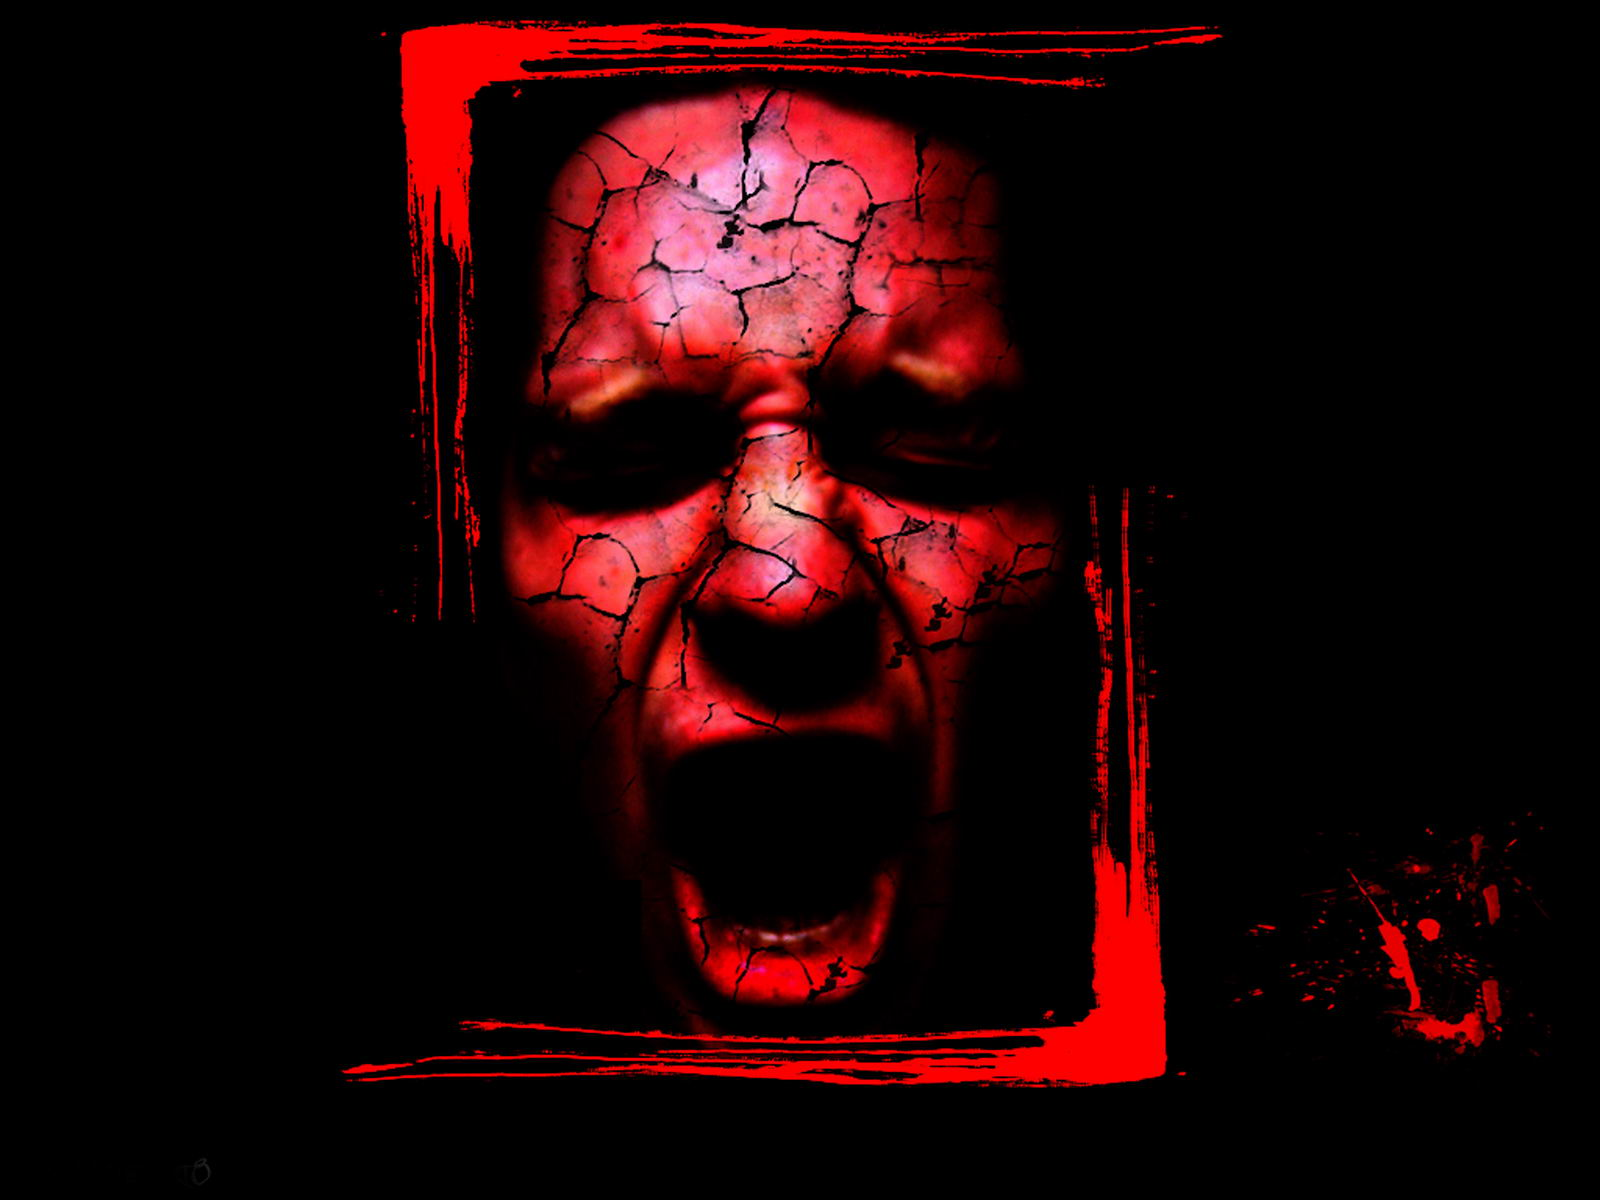 scary wallpaper - scary face compilation wallpaper | Scary ...